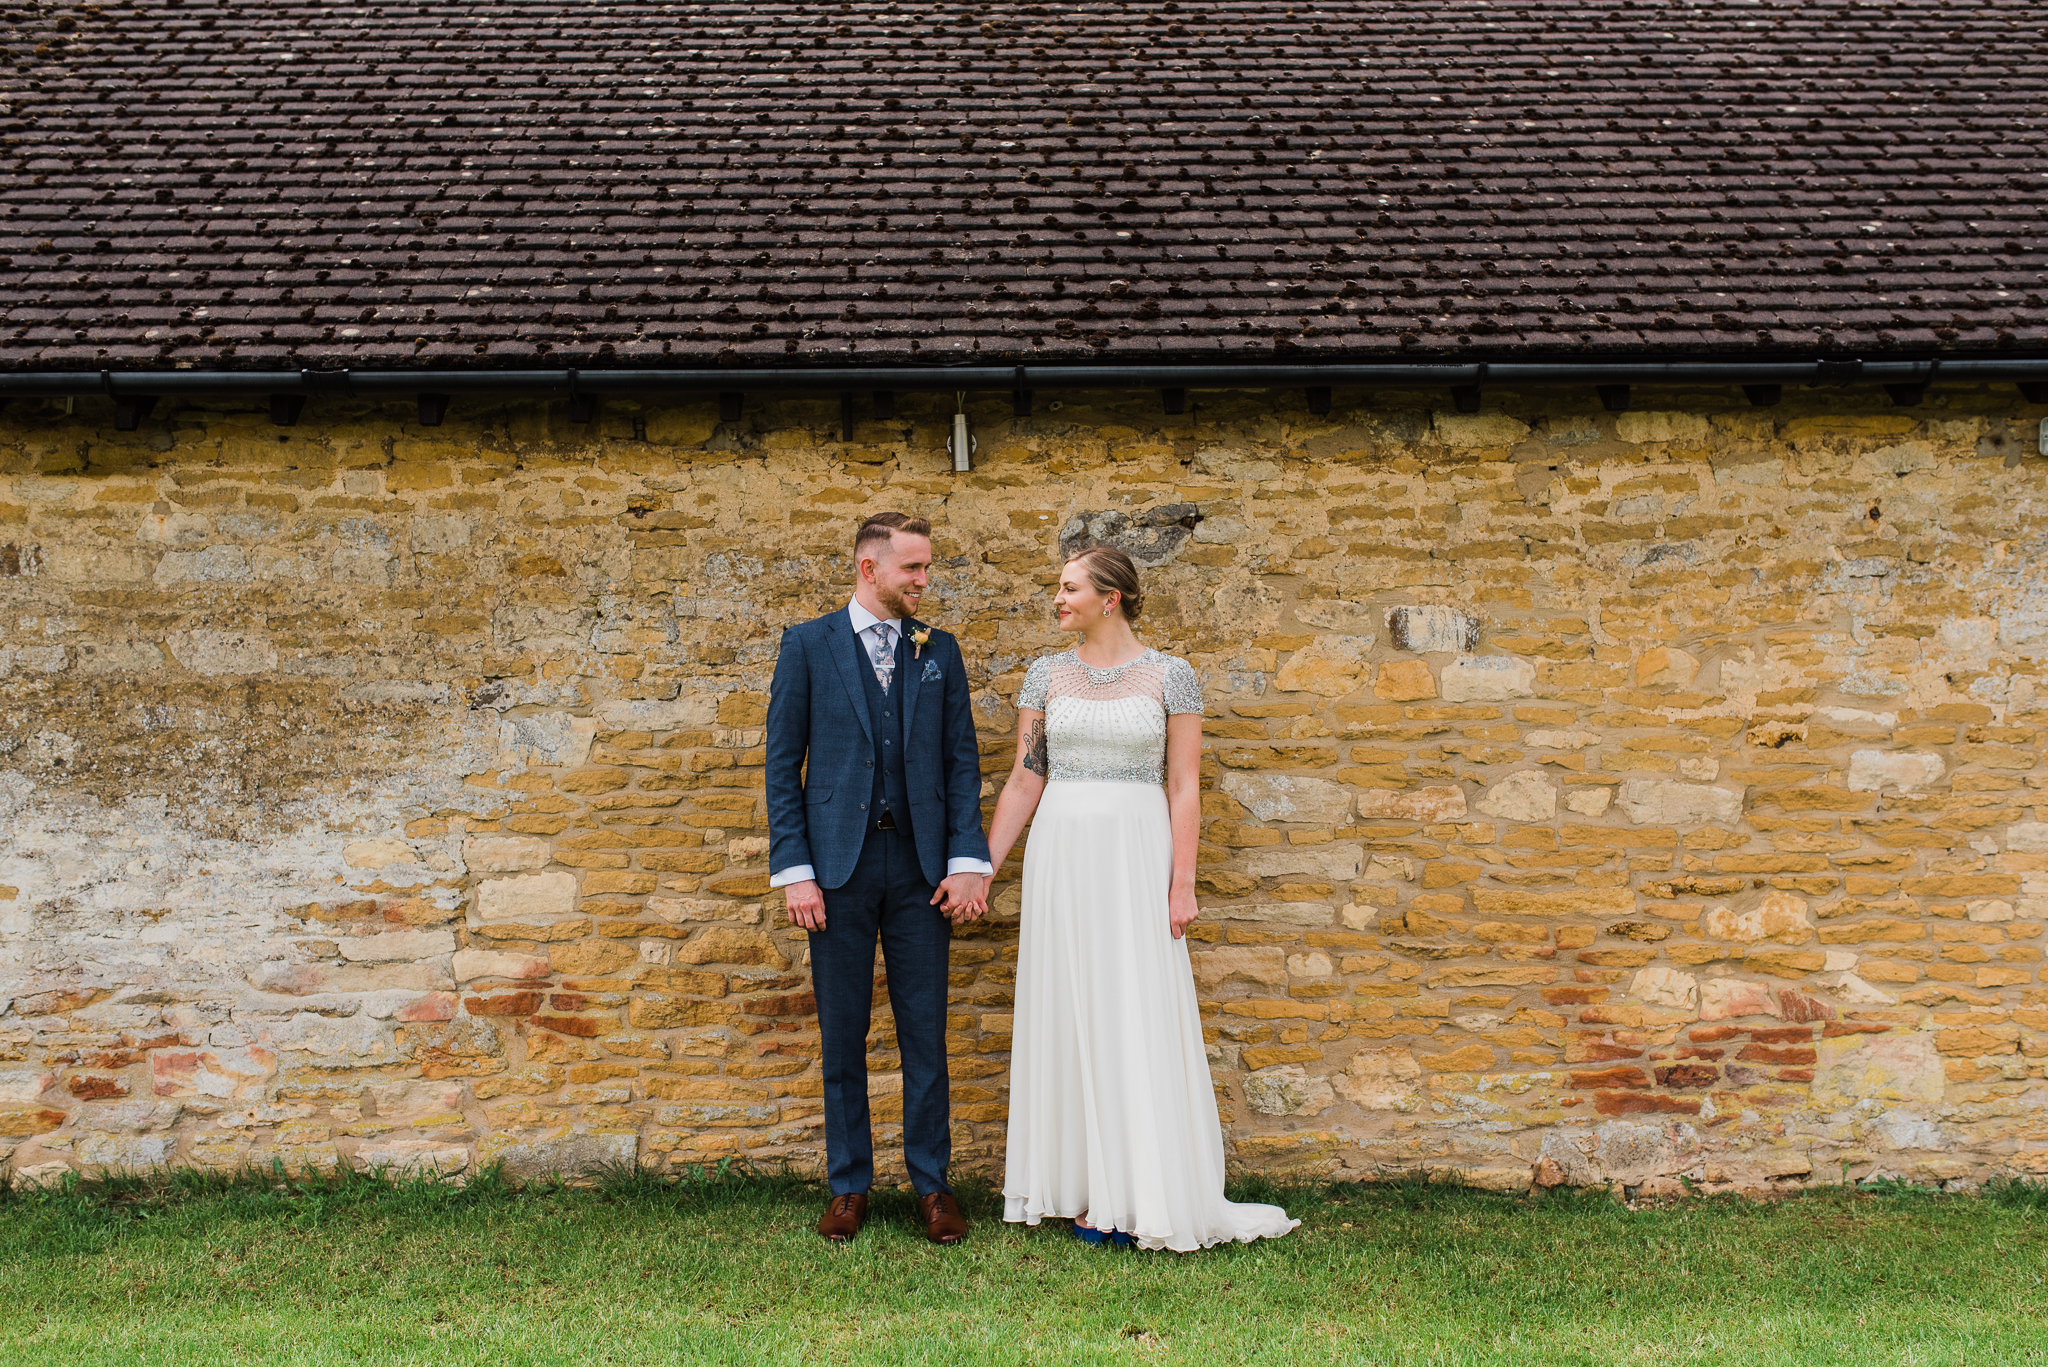 Bride and groom at Lapstone Barn wedding